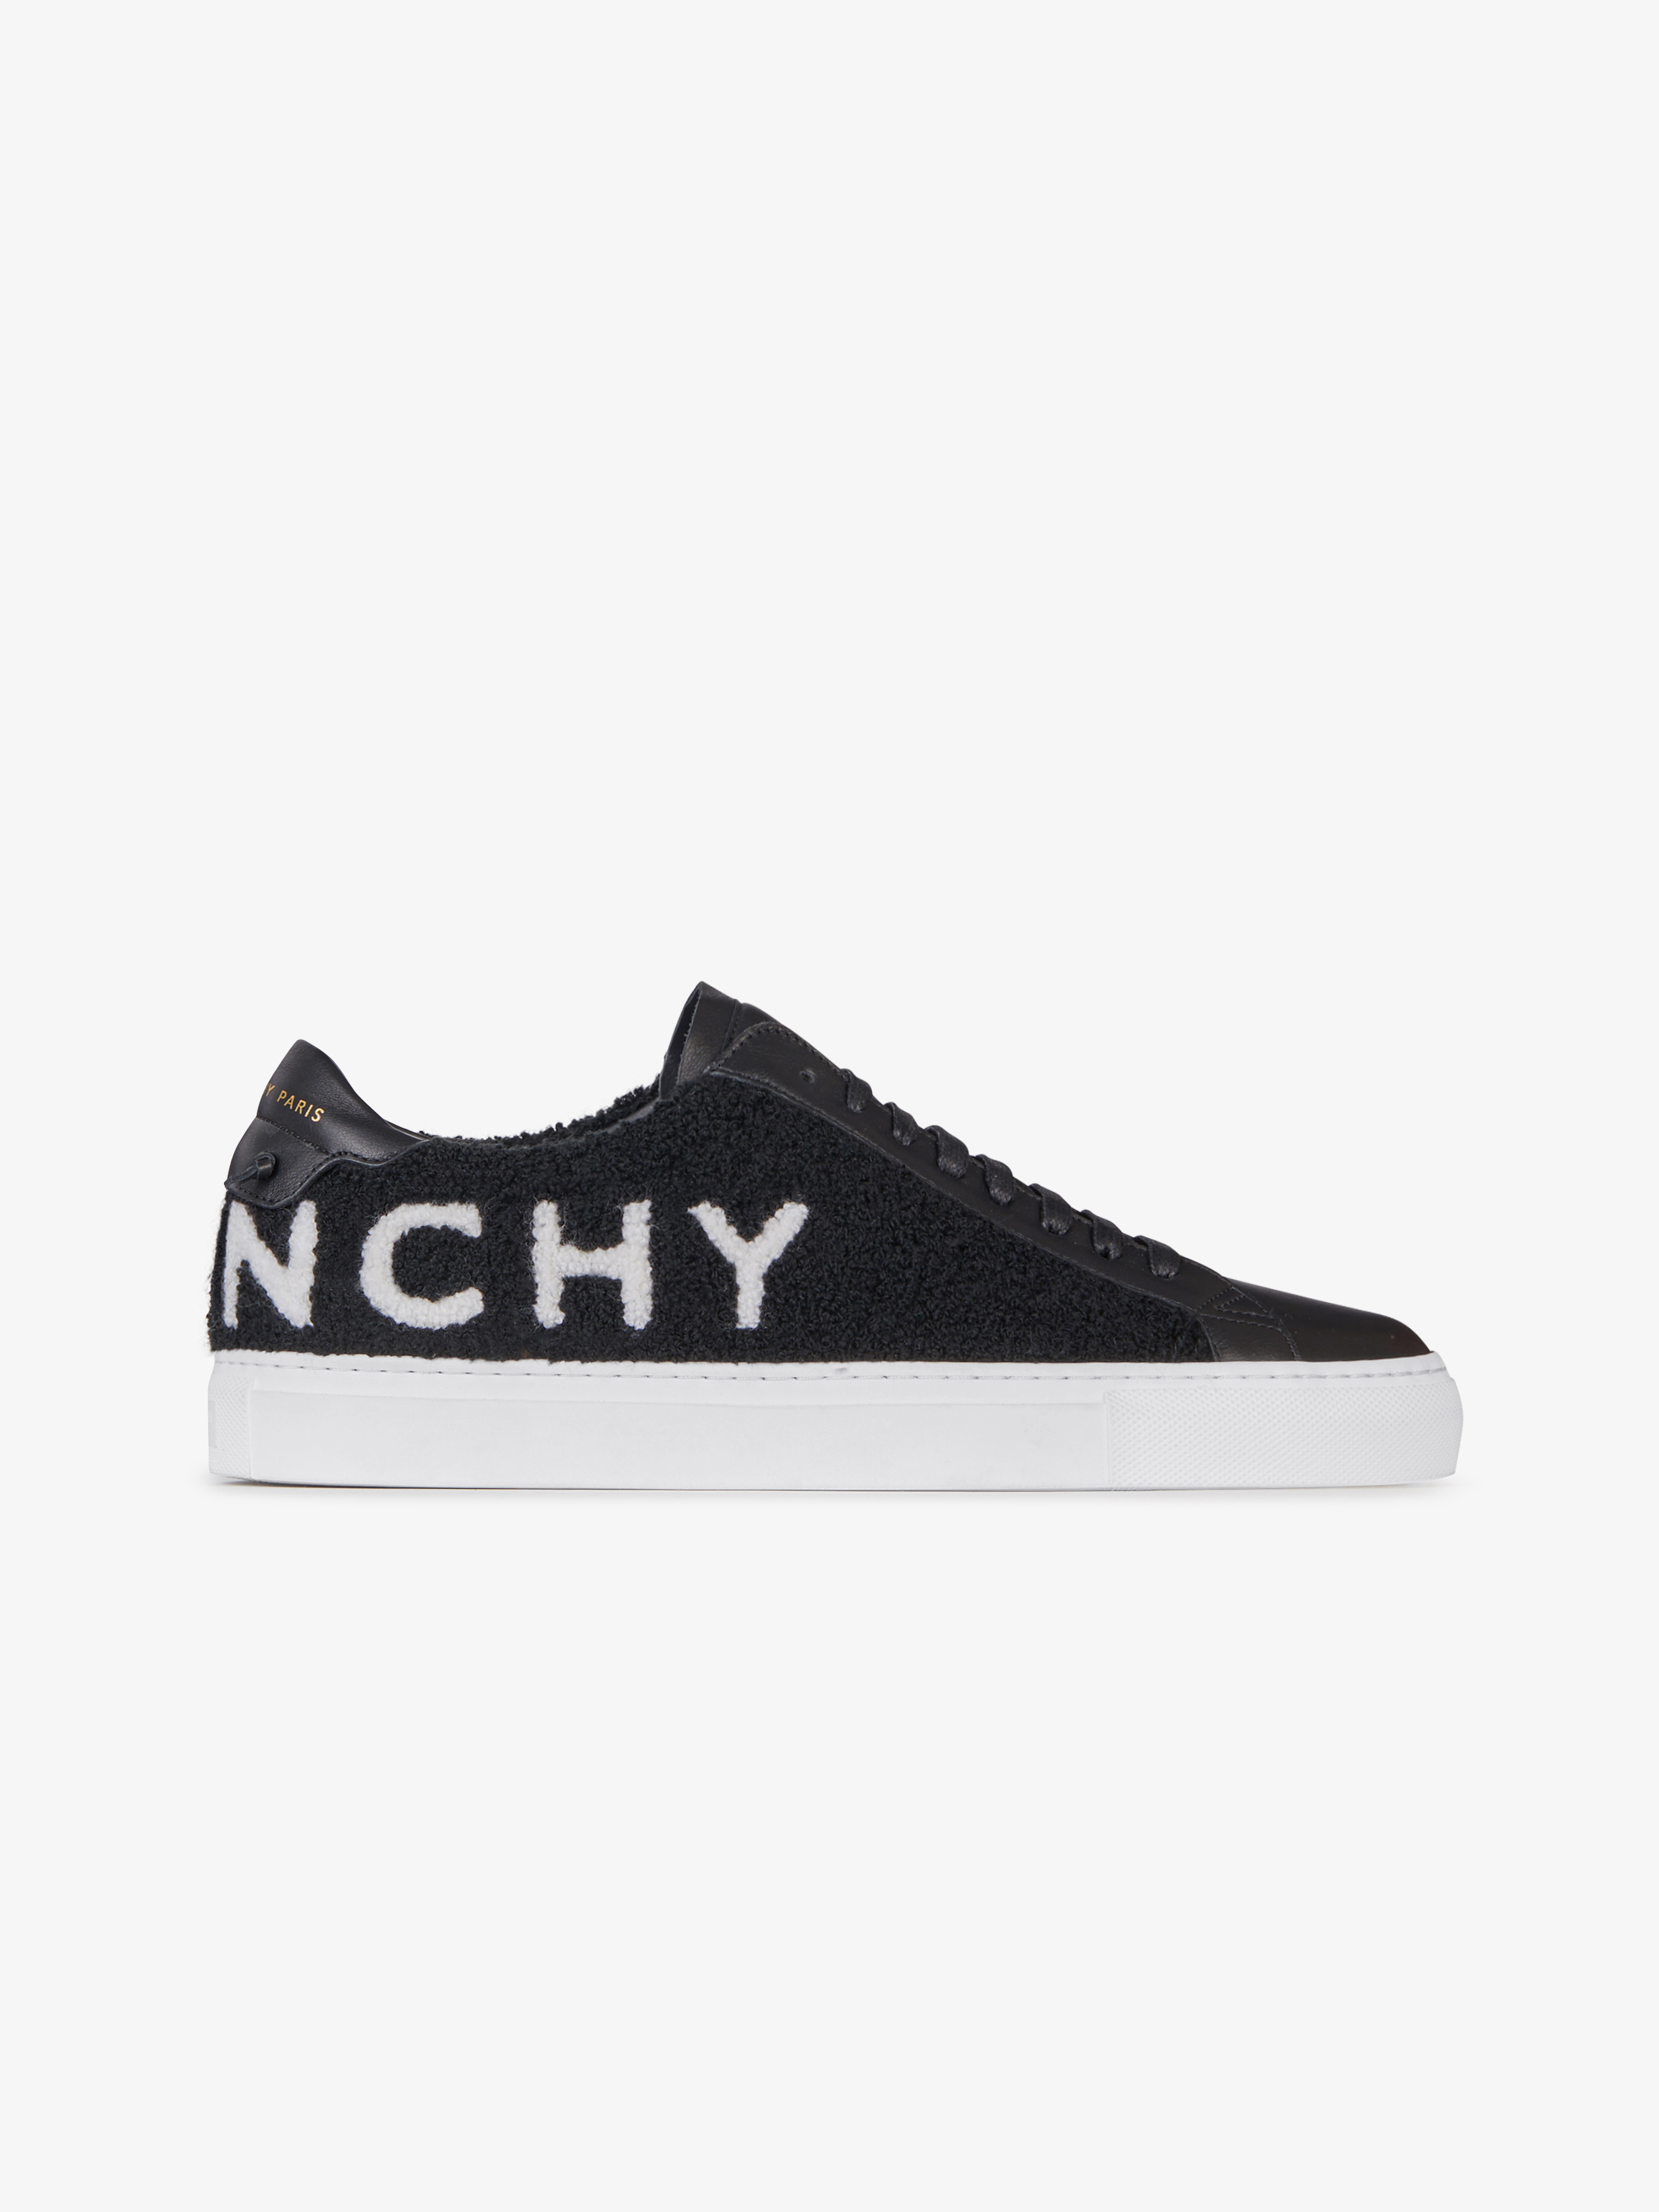 GIVENCHY sneakers in leather and terrycloth